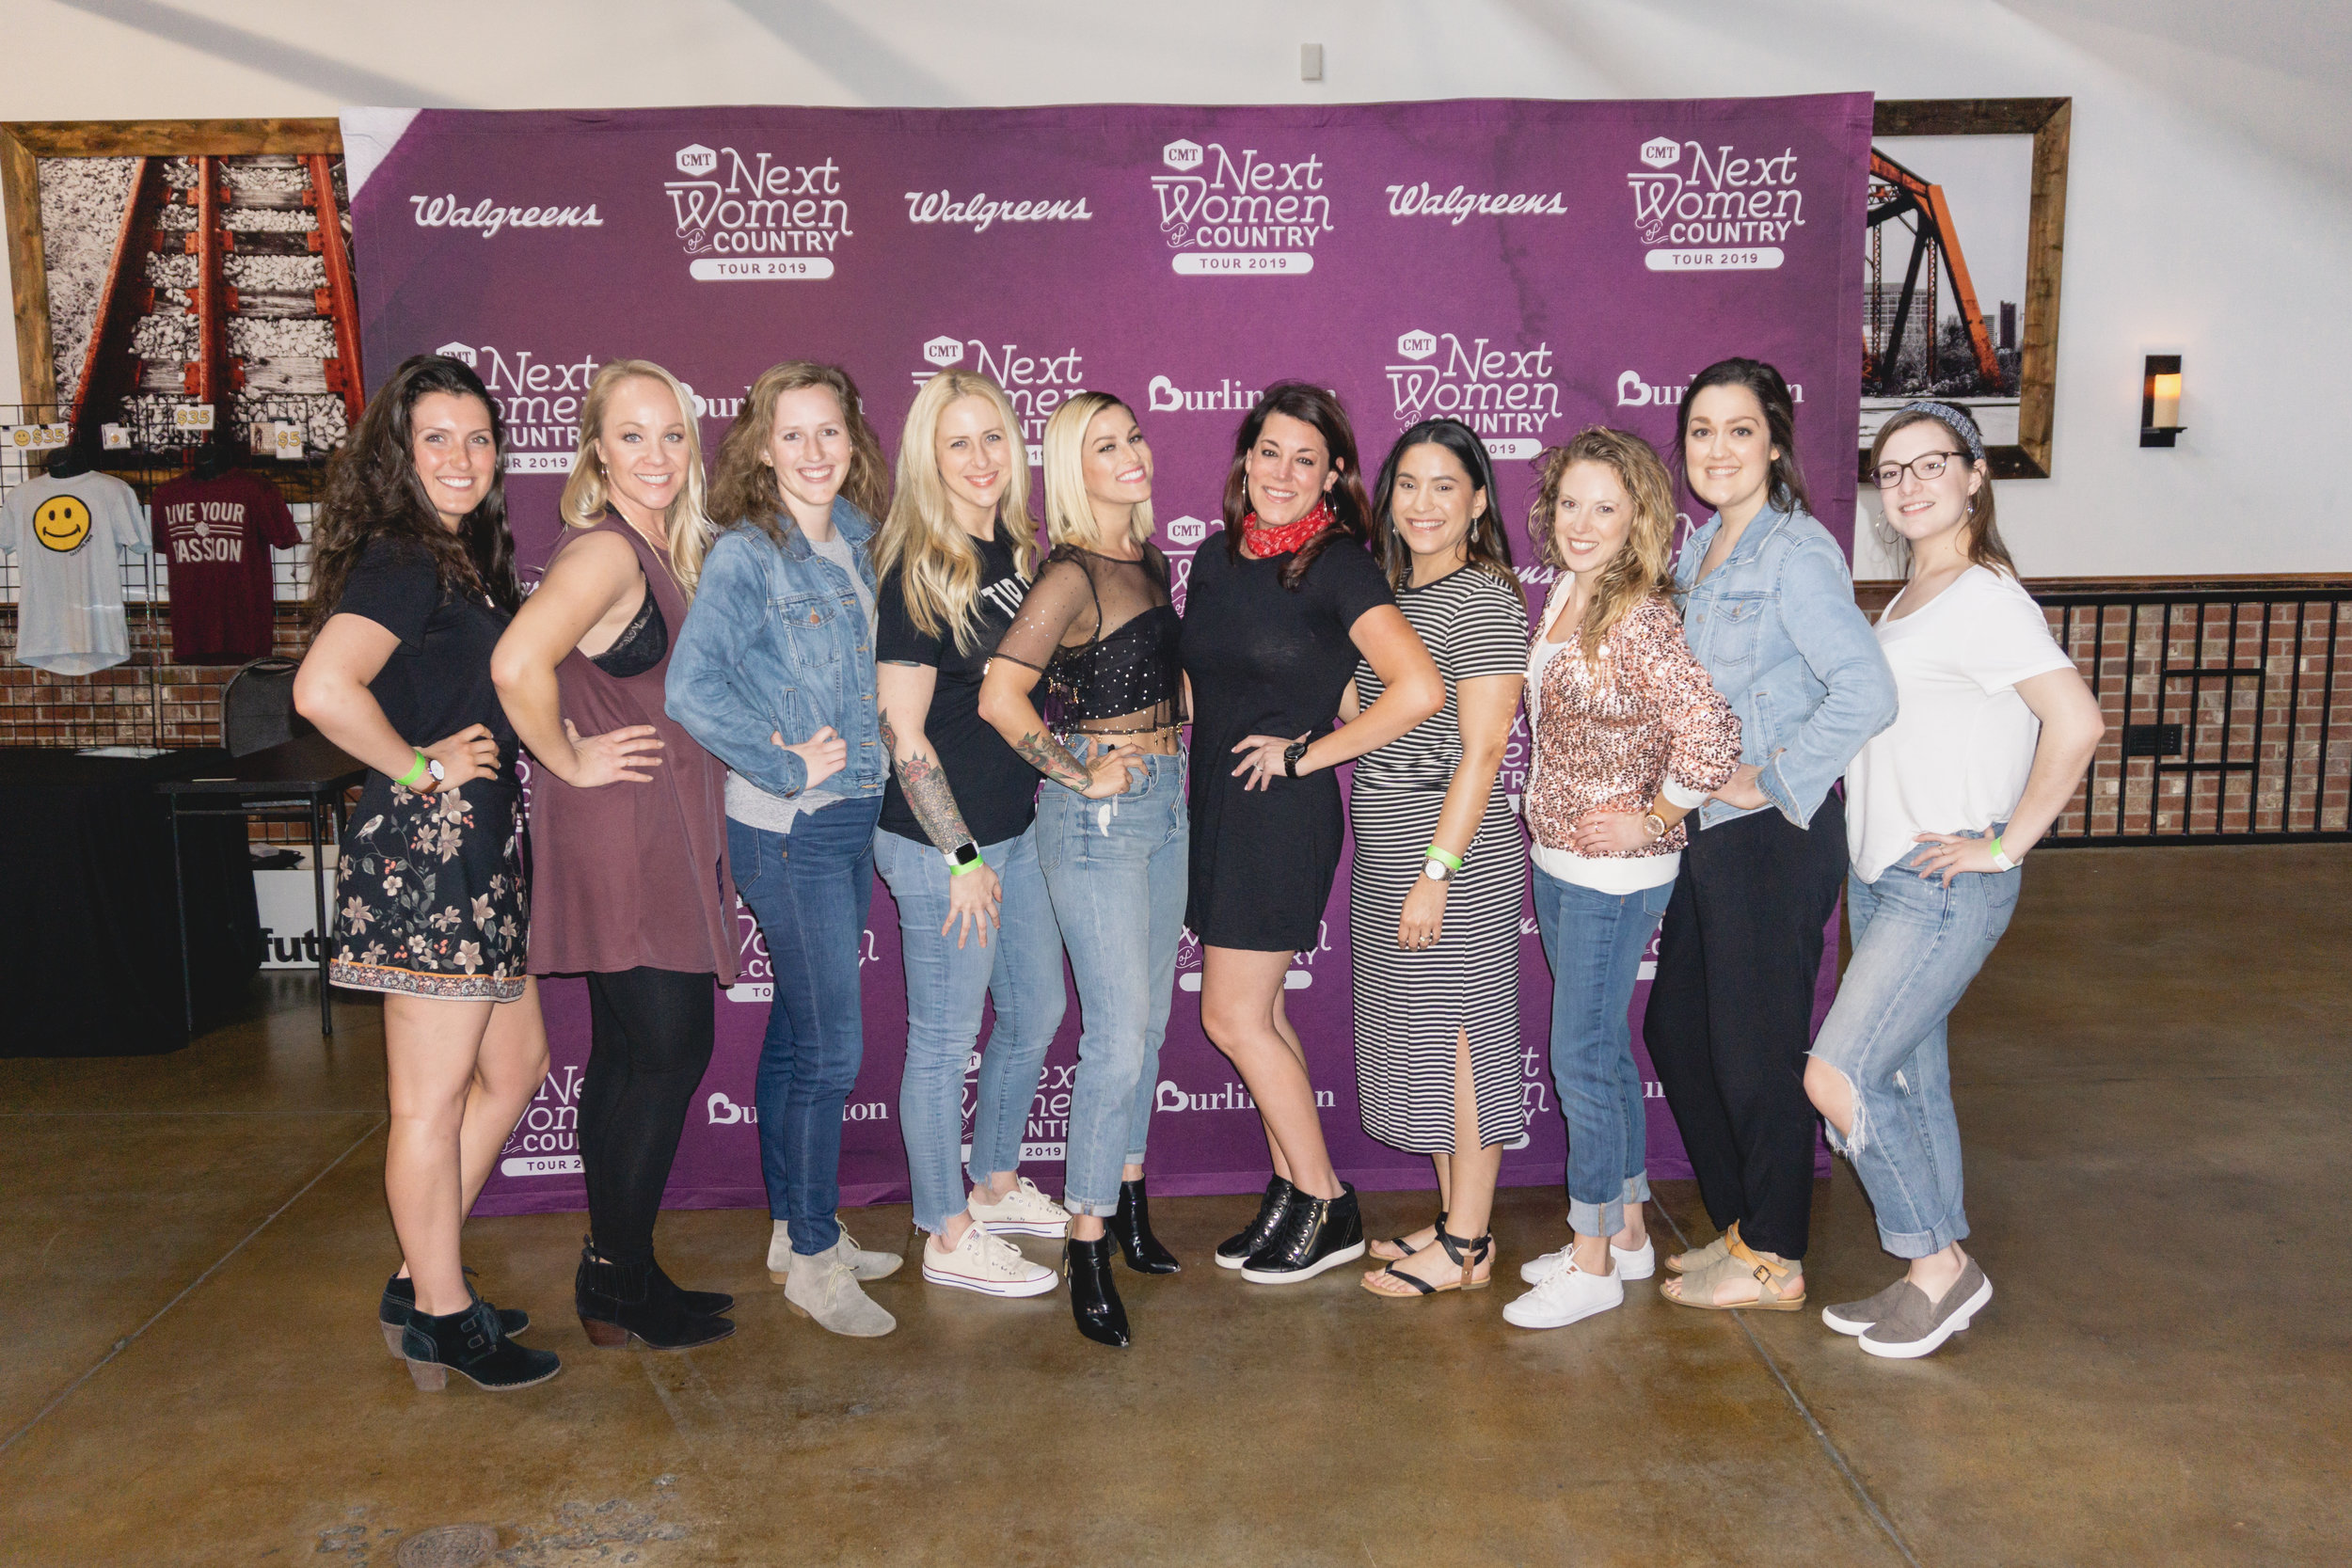 CP_04-18-19_Atlanta_M&G_CURB-00190.jpg